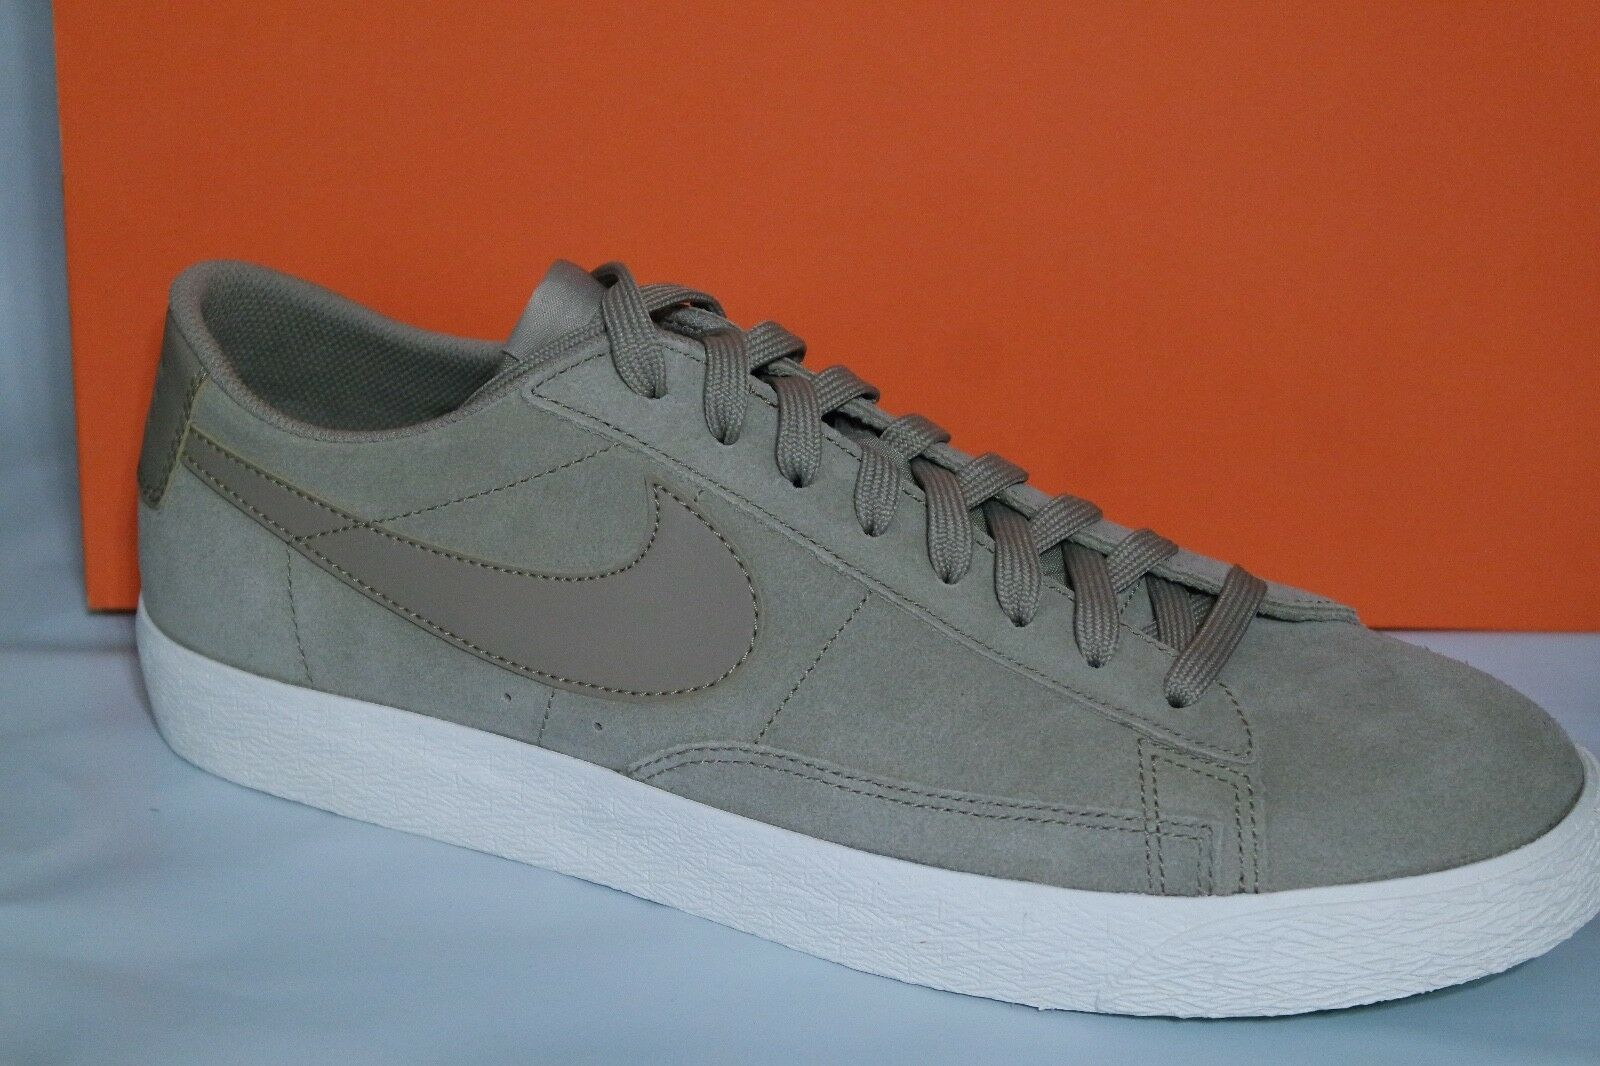 NIKE BLAZER LOW MEN'S SHOE, KHAKI, SIZE 11.5, 371760 208